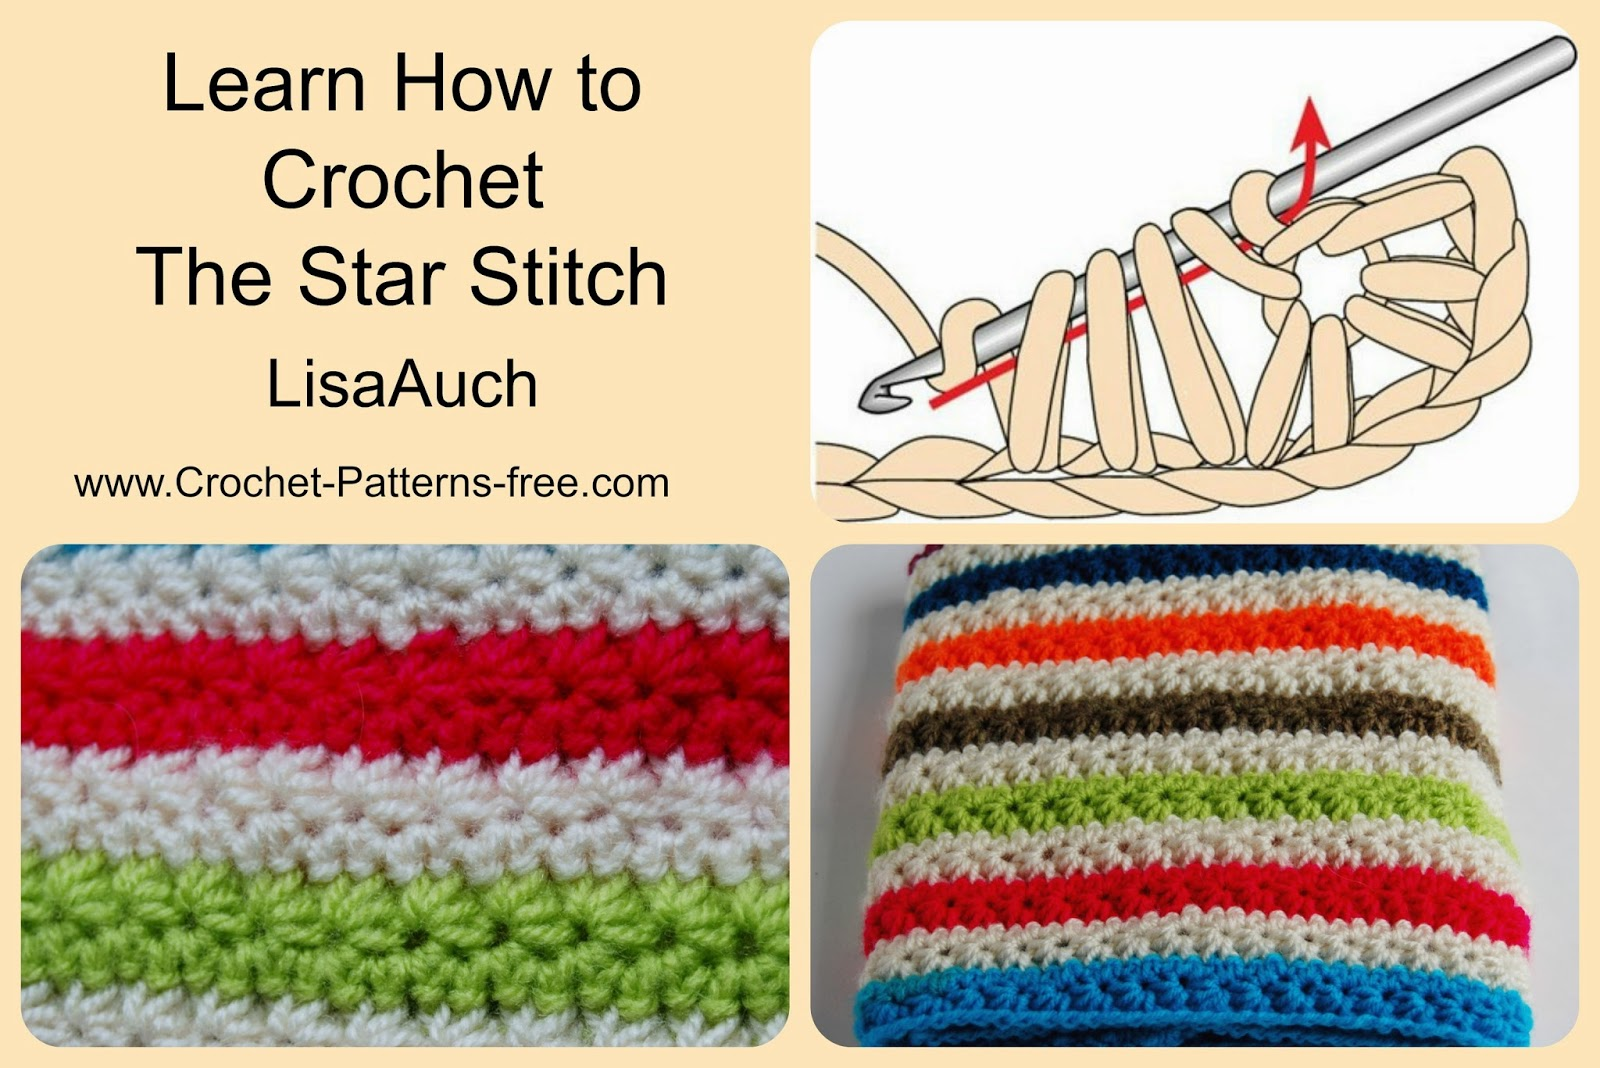 How to crochet the star stitch and crochet a warm cosy blanket how to crochet the star daisy stitch free crochet patterns learn how to croche dt1010fo